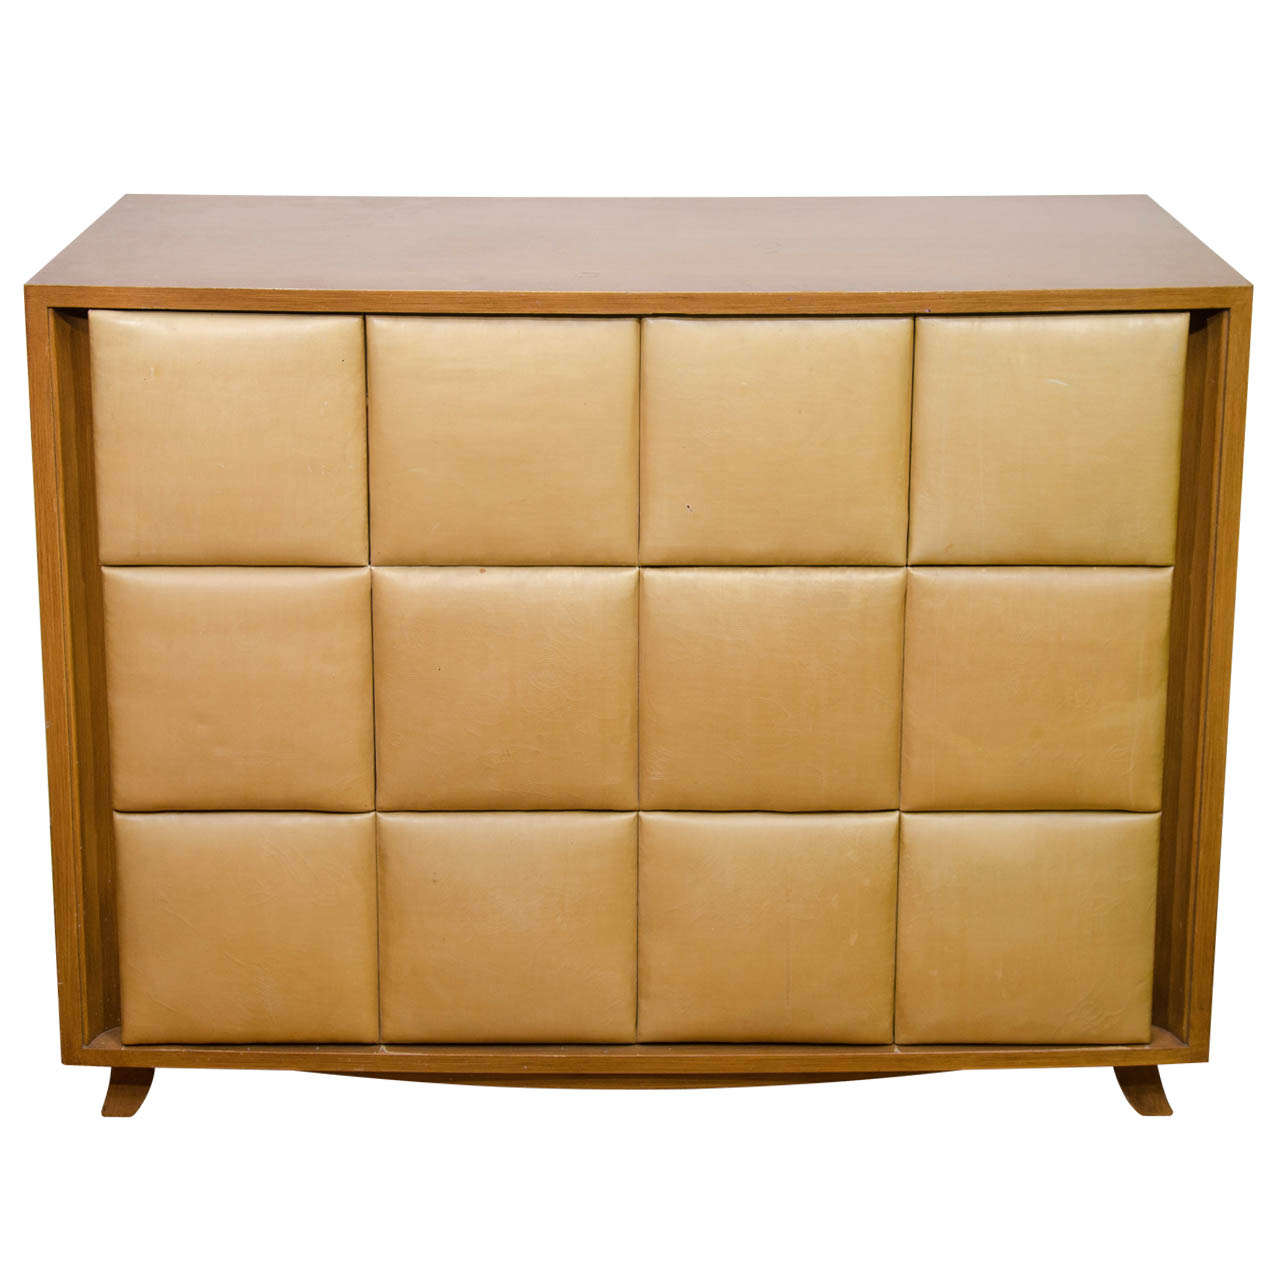 Gentil An Art Deco Chest Of Drawers By Gilbert Rohde For Herman Miller For Sale